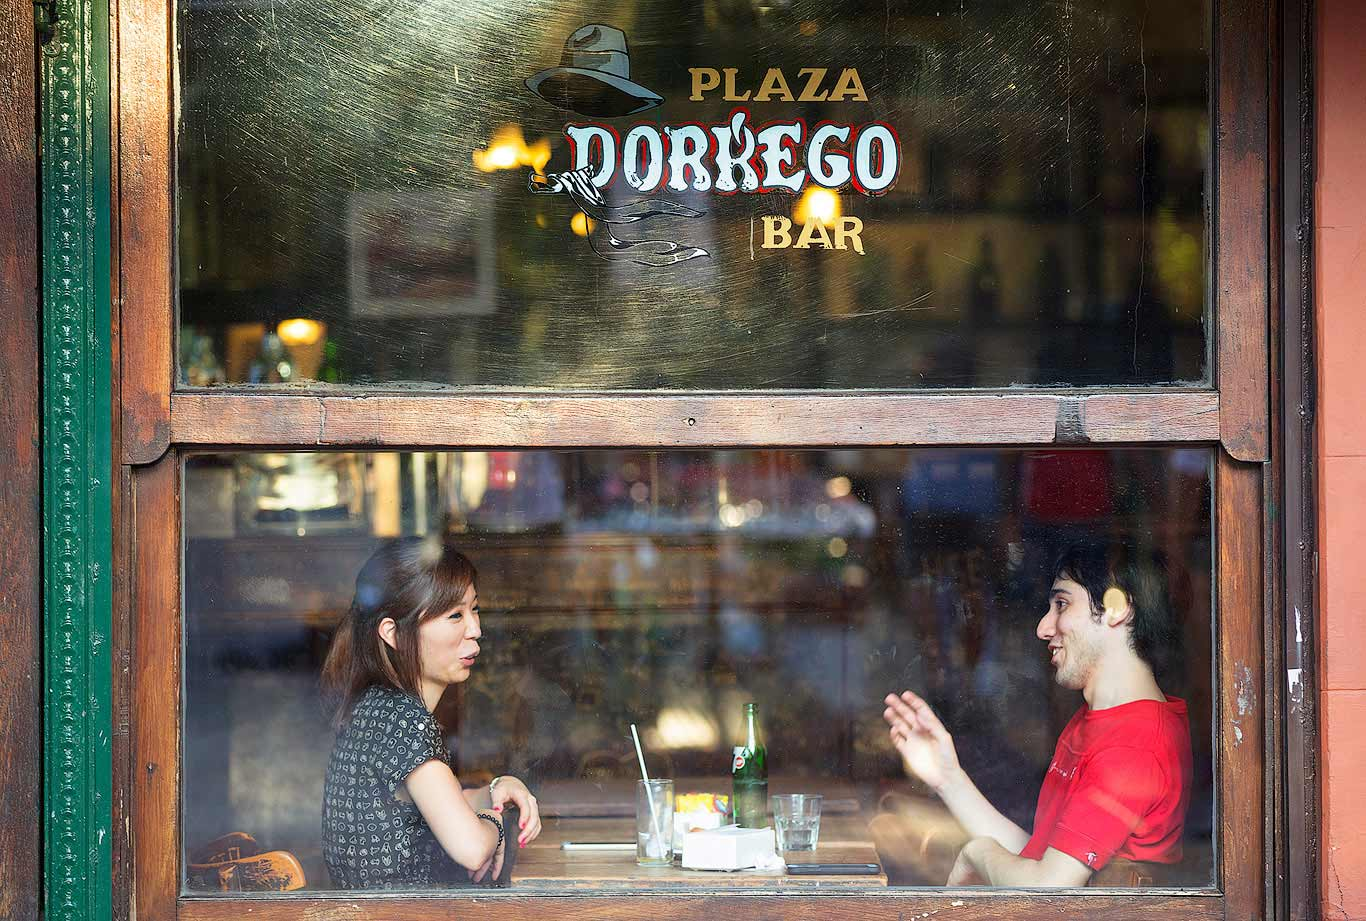 Couple chatting inside the Plaza Dorrego Bar